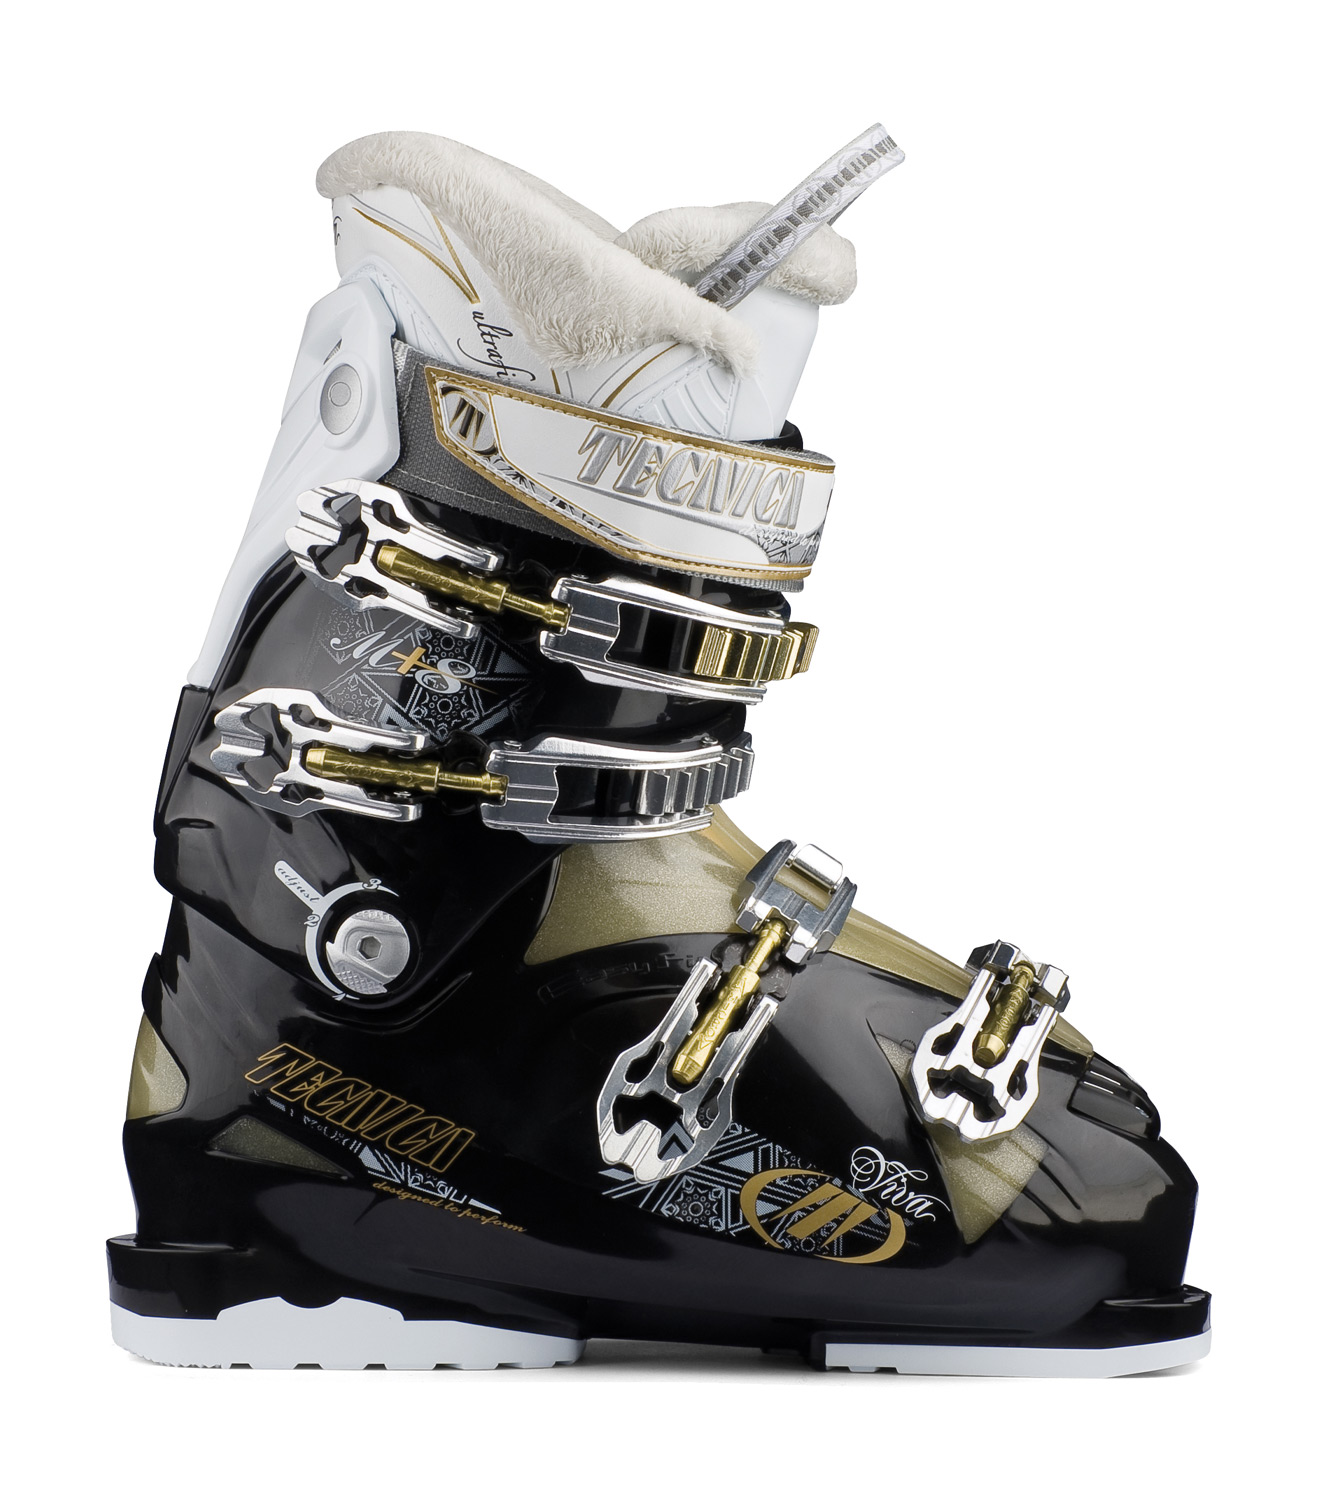 Ski Key Features of the Tecnica Viva M 8 Ski Boots: 3 Density Technology PCS Liner System Viva PCS Footbed Viva Heel Cradle Cuff Alignment Progressive Flex System Power Spoiler Mega Alu Micro Buckles Easy Move Cuff Catch Triple Position Cuff Catches Viva Flared Scalloped Calf Flex: 70 Last: 105mm: C-E Widths - $161.95